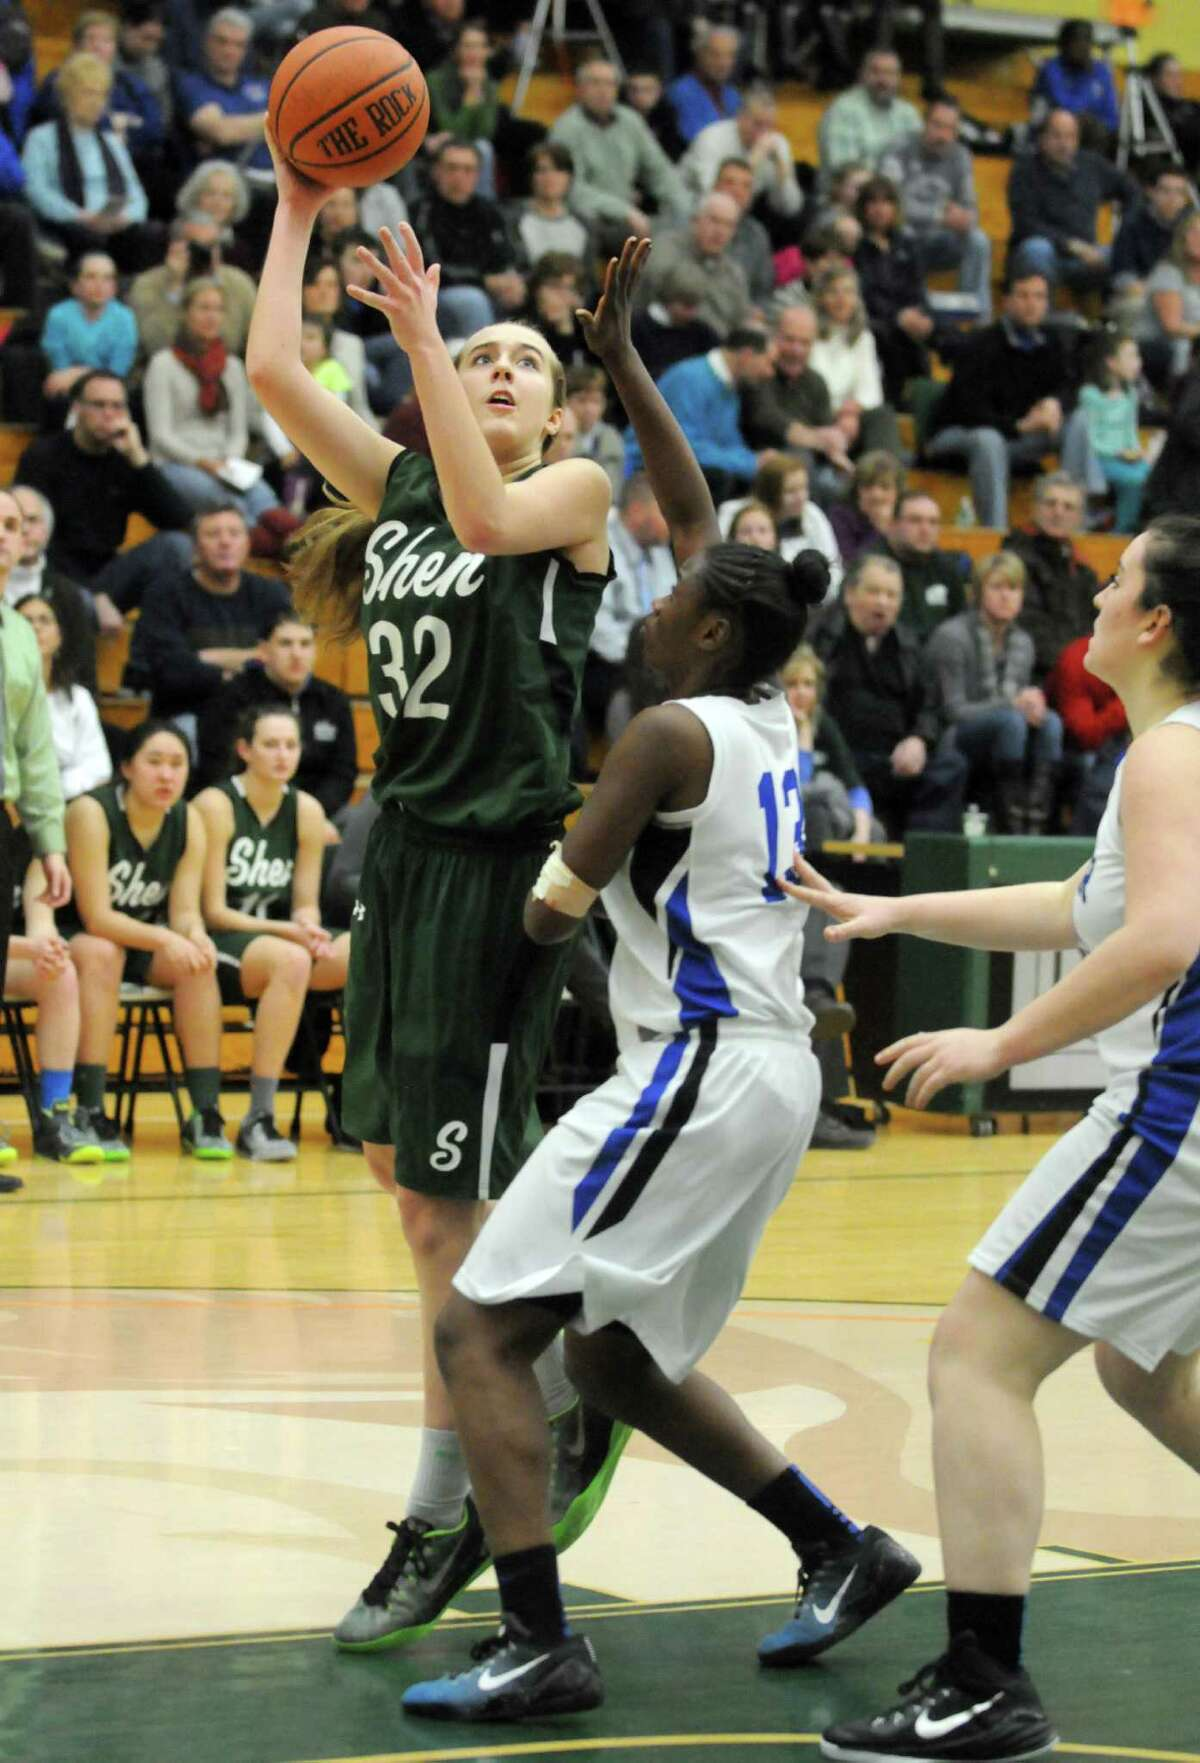 Shenendehowa's Carly Boland puts up a shot during their girl's high school basketball game against Shaker at Siena College on Tuesday Feb. 10, 2015 in Loudonville ,N.Y. (Michael P. Farrell/Times Union)